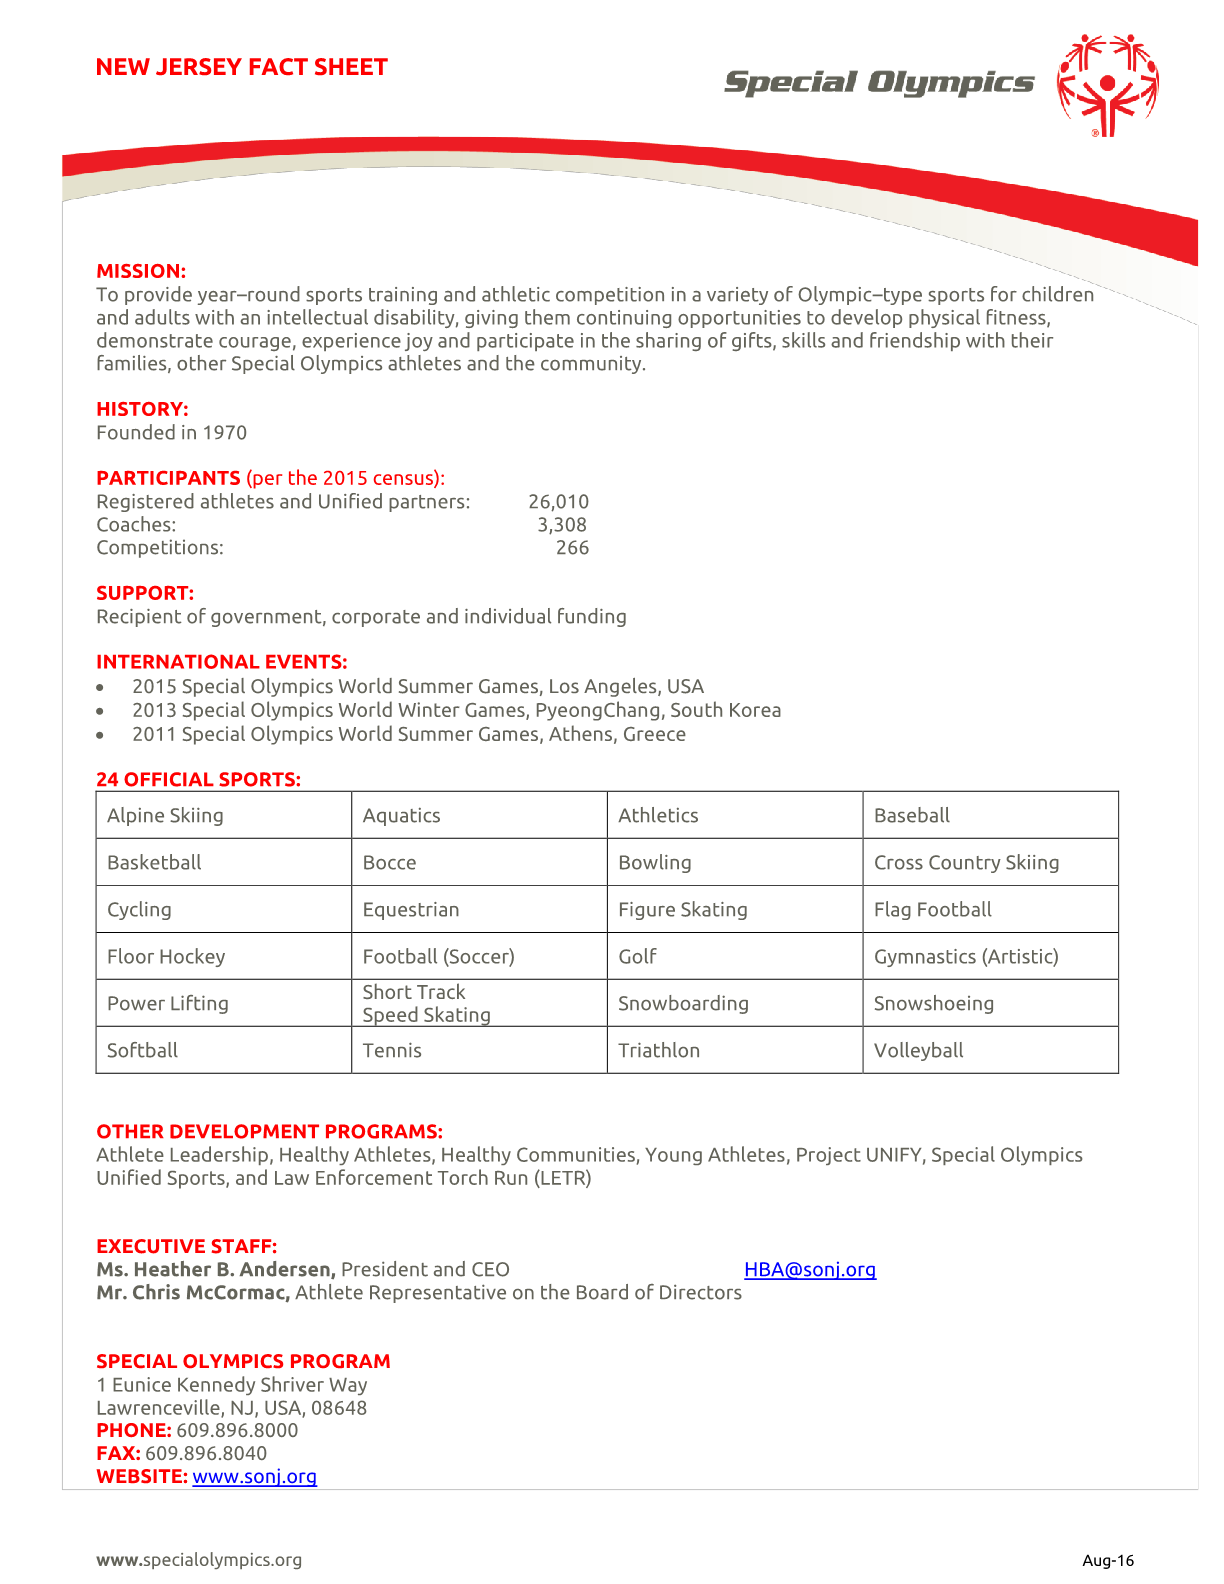 New Jersey Special Olympics Fact Sheet